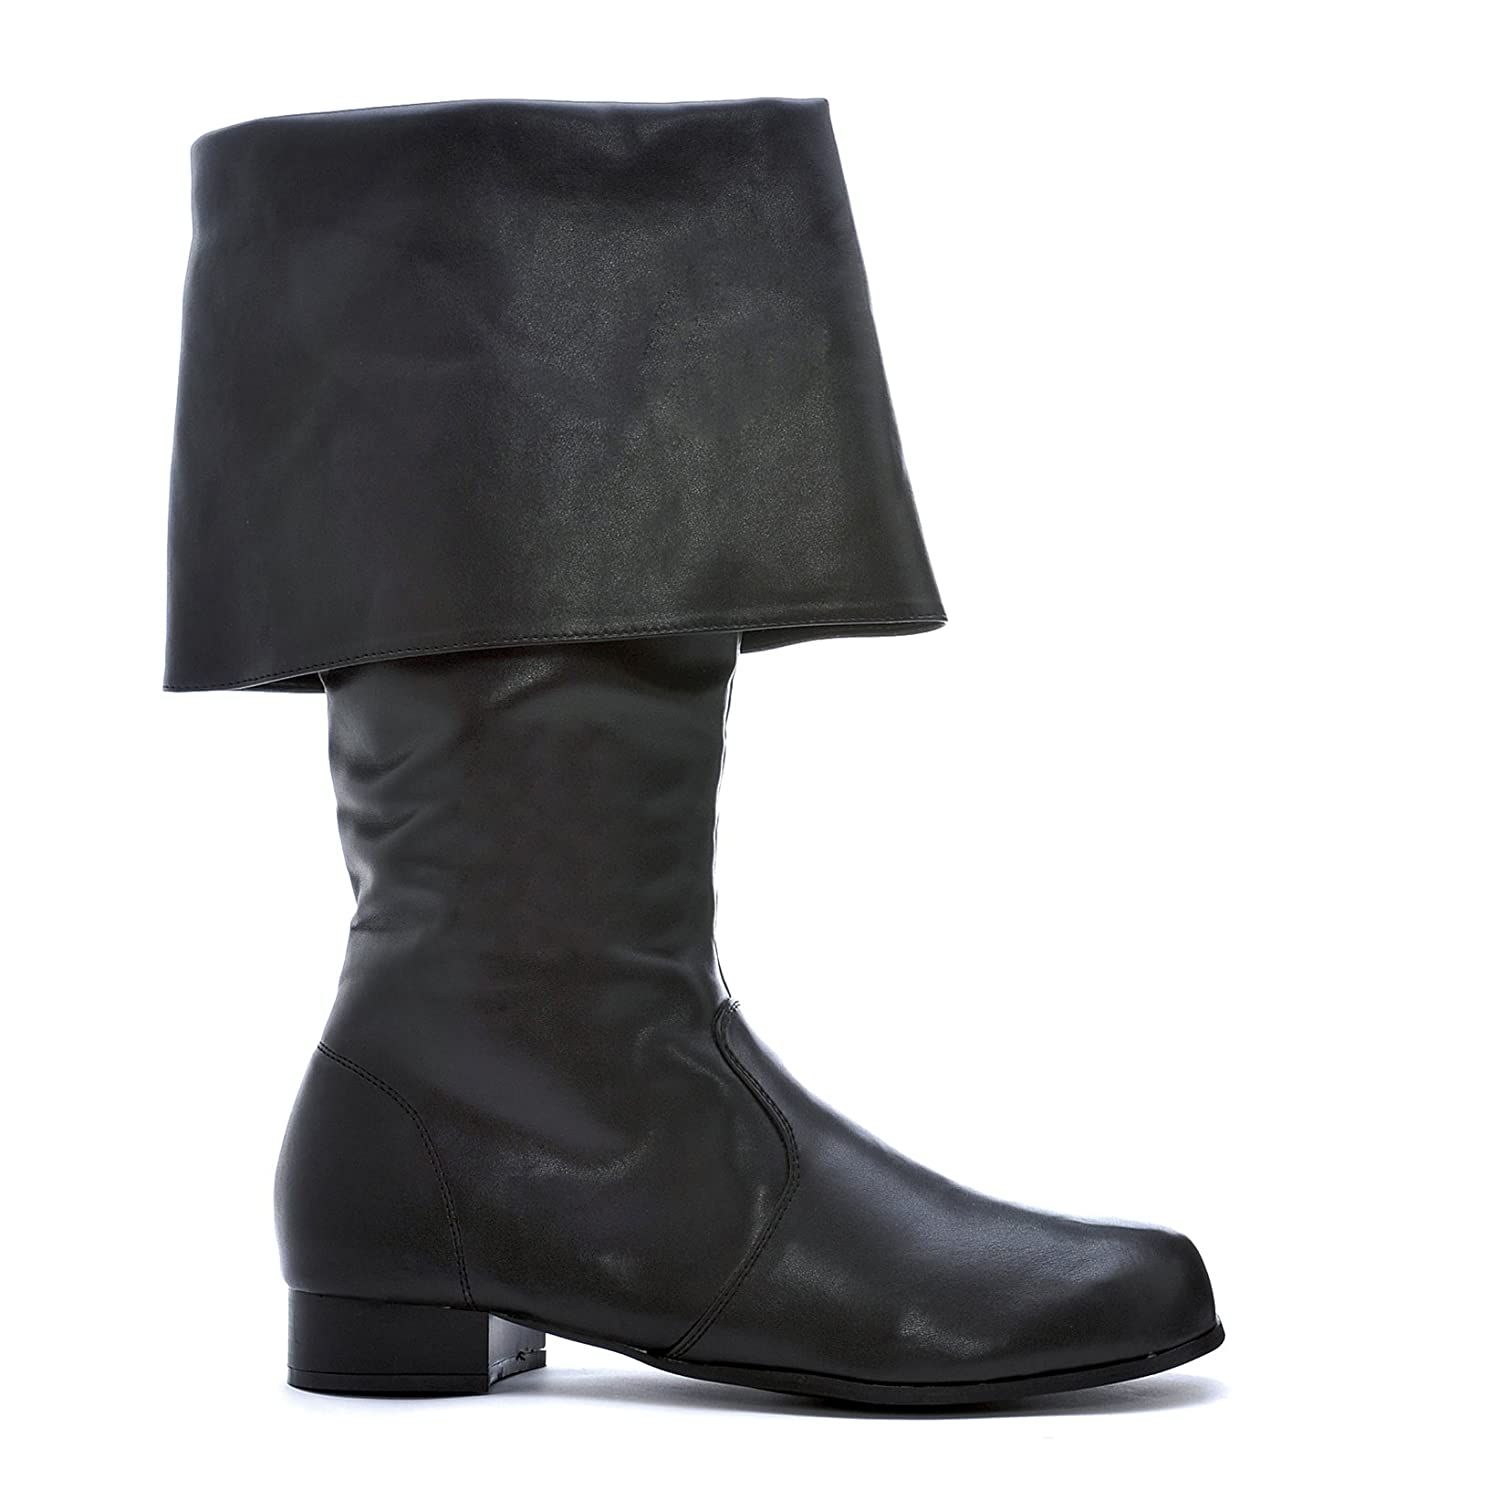 Women's Black Fold Down Faux Leather Pirate Boots - DeluxeAdultCostumes.com